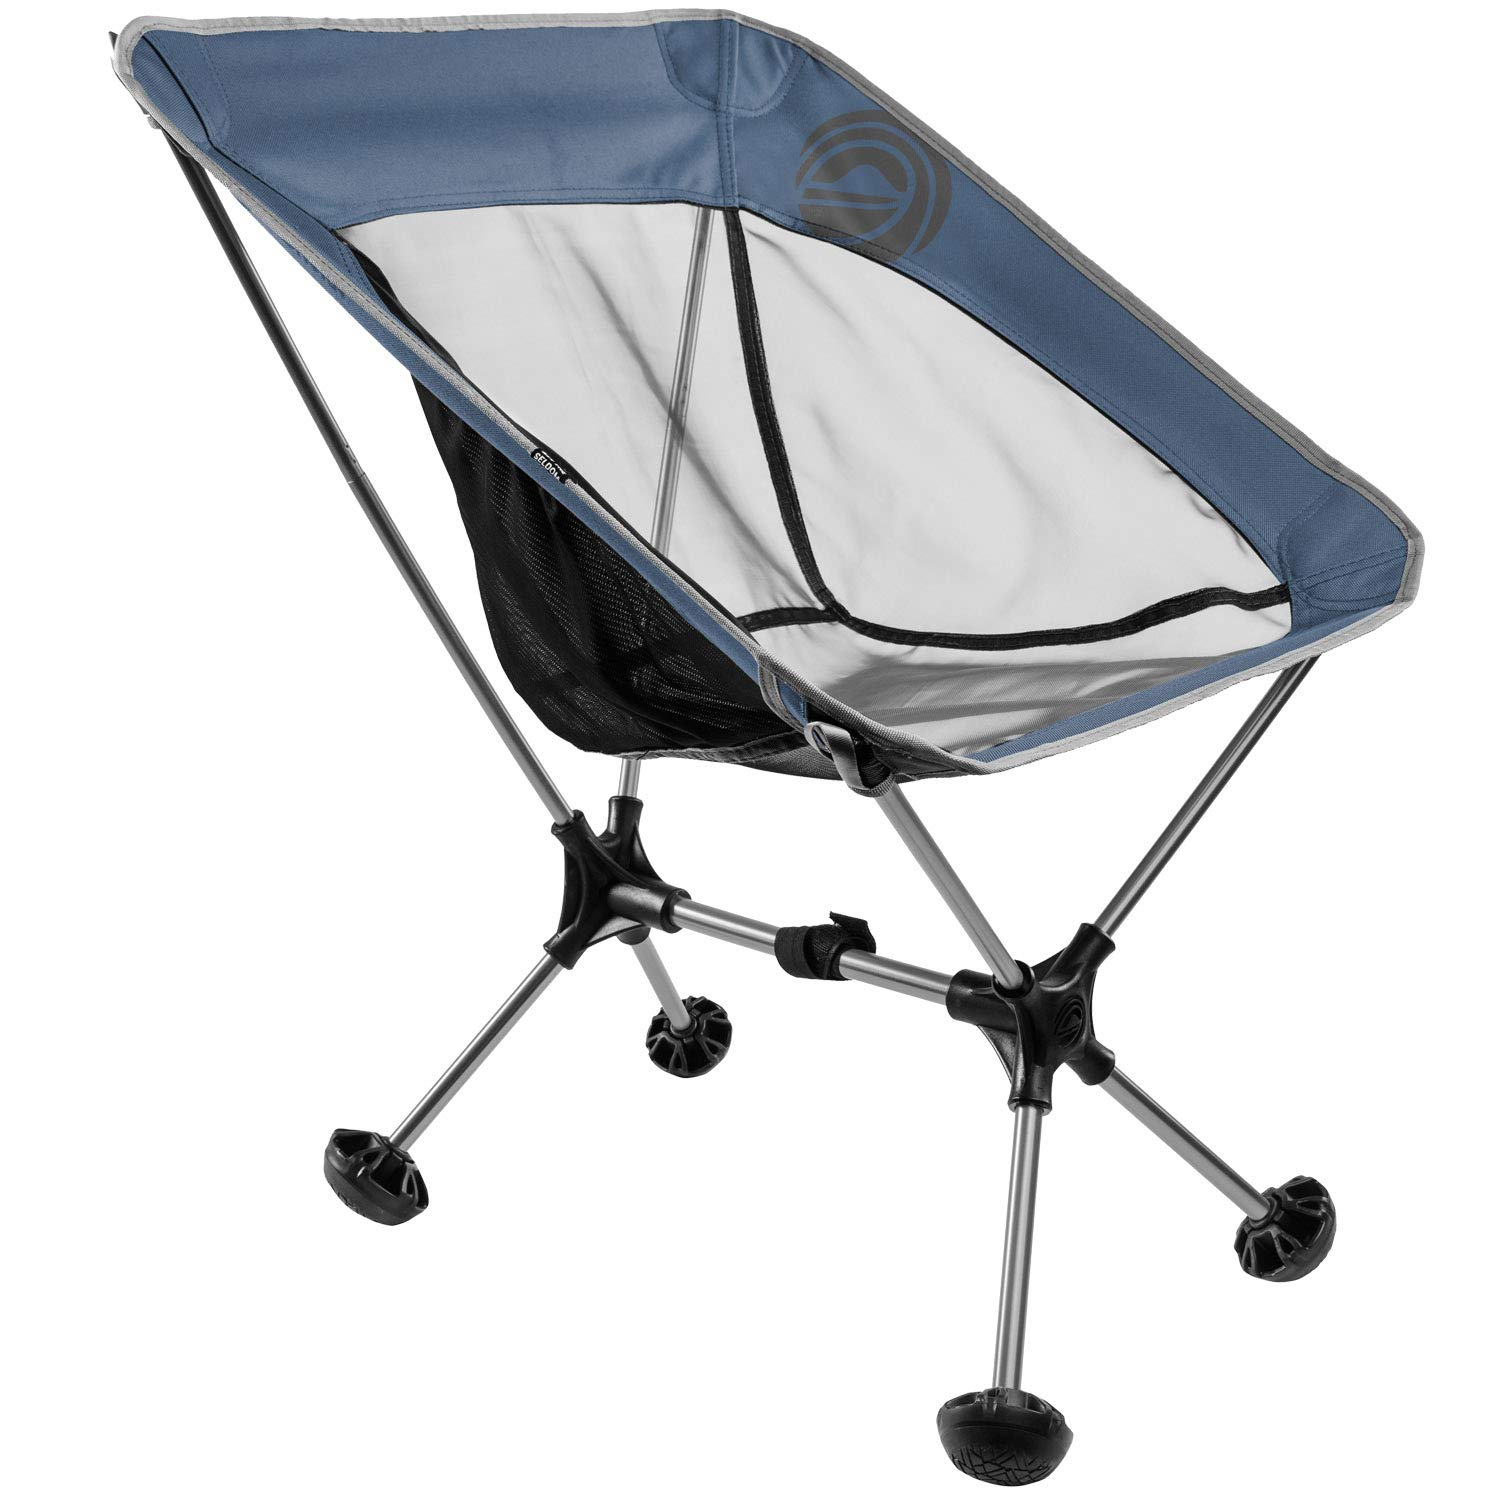 WildHorn Outfitters Terralite Portable Camp Chair